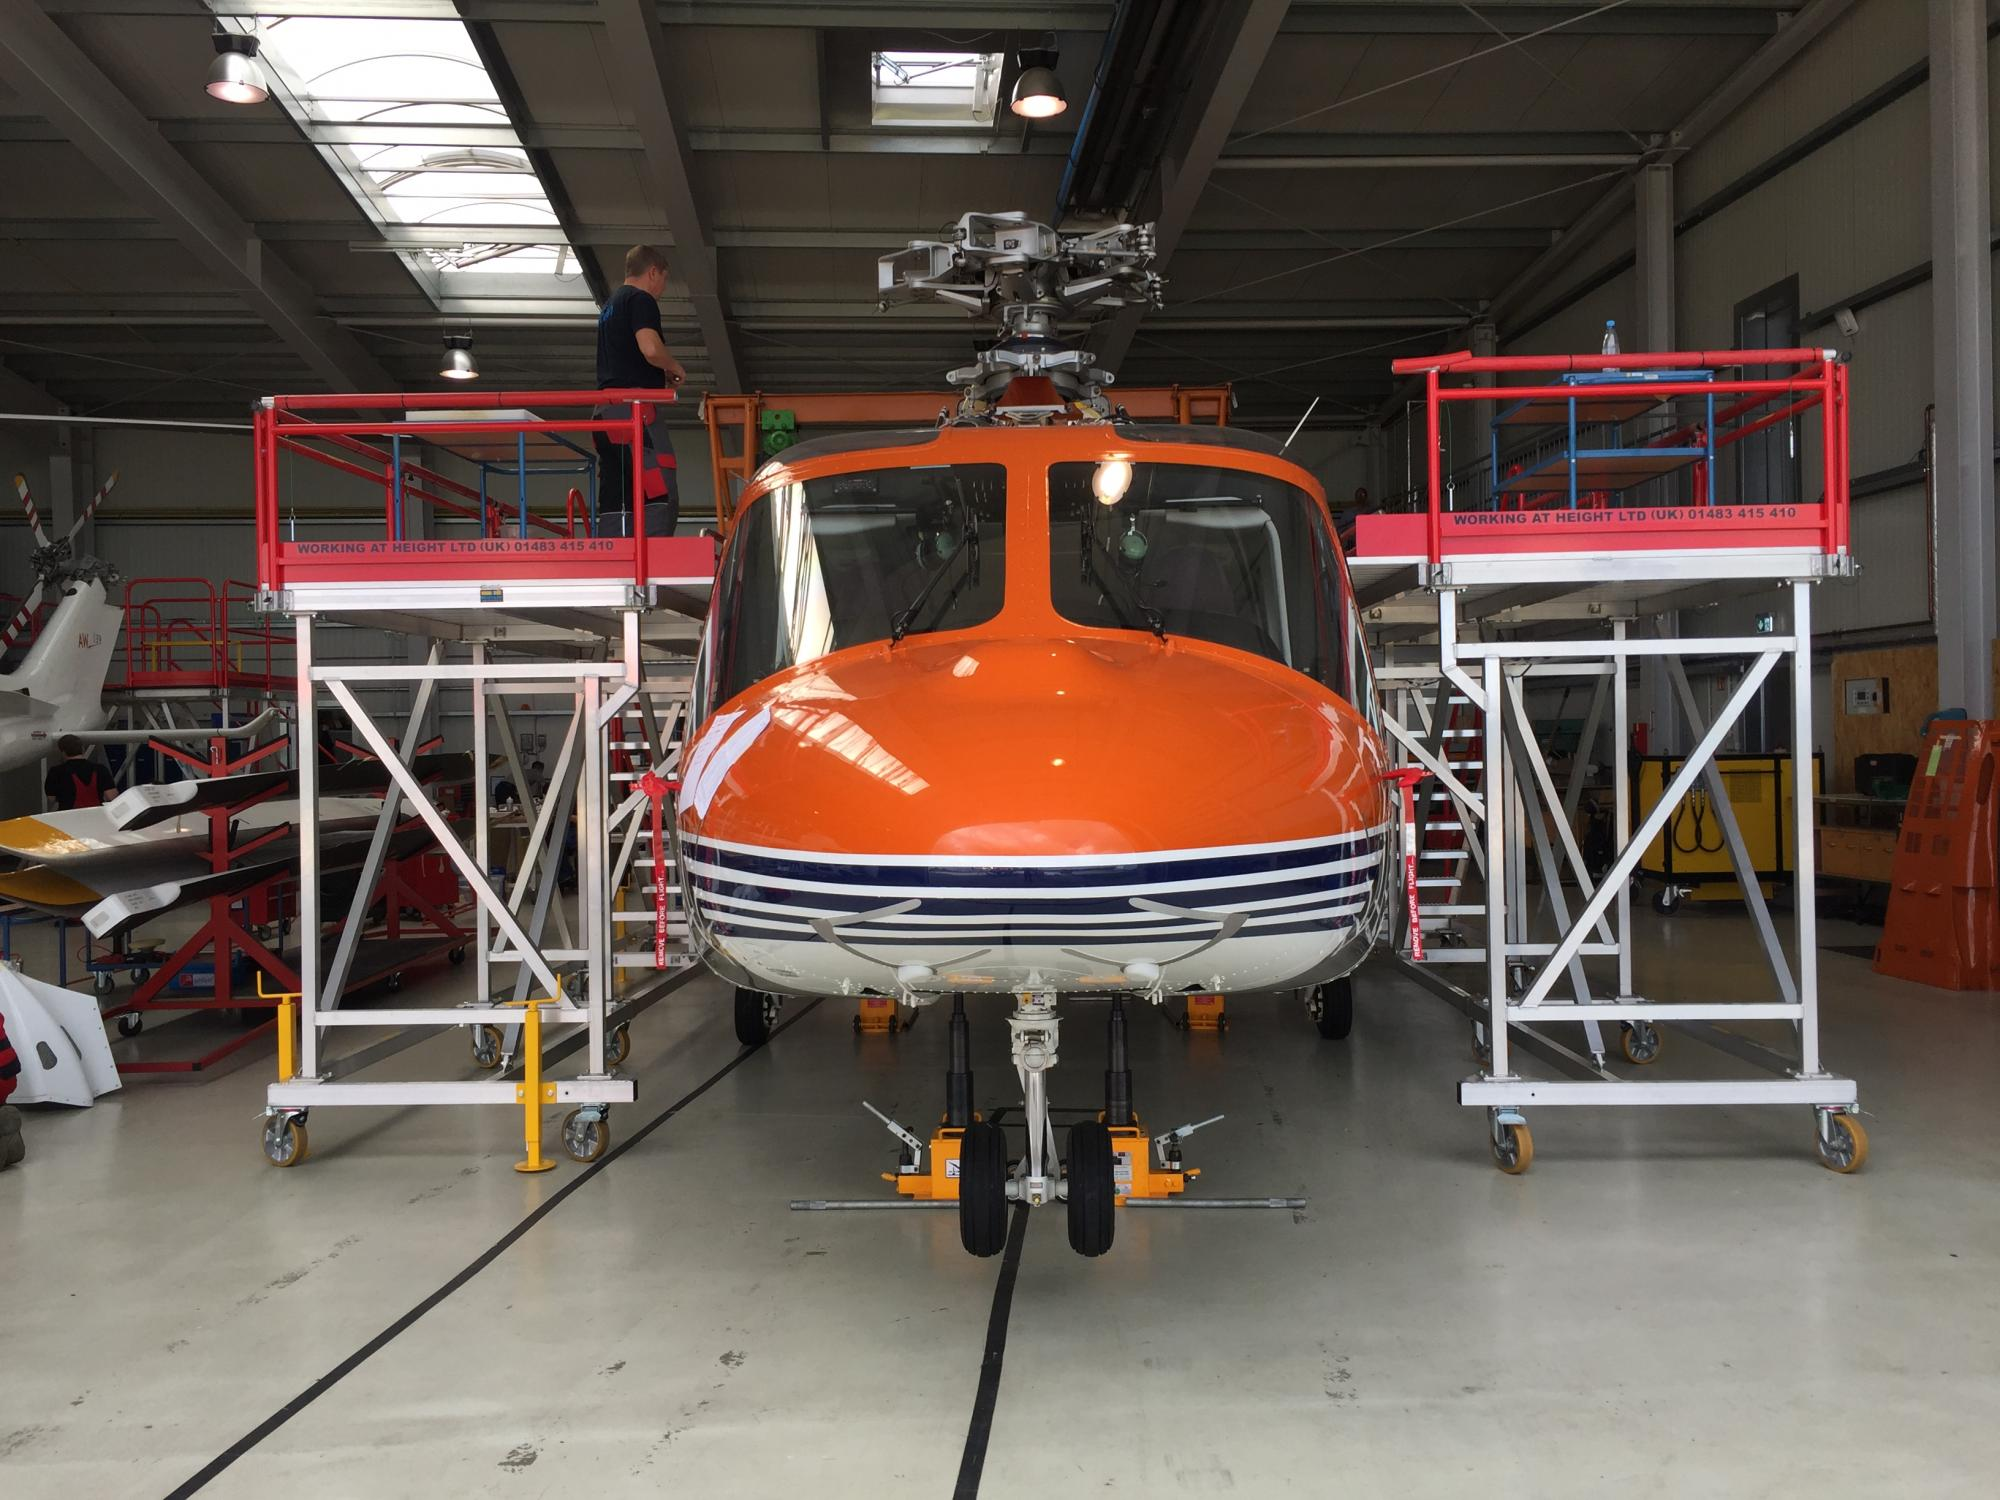 HELICOPTER ACCESS PLATFORMS